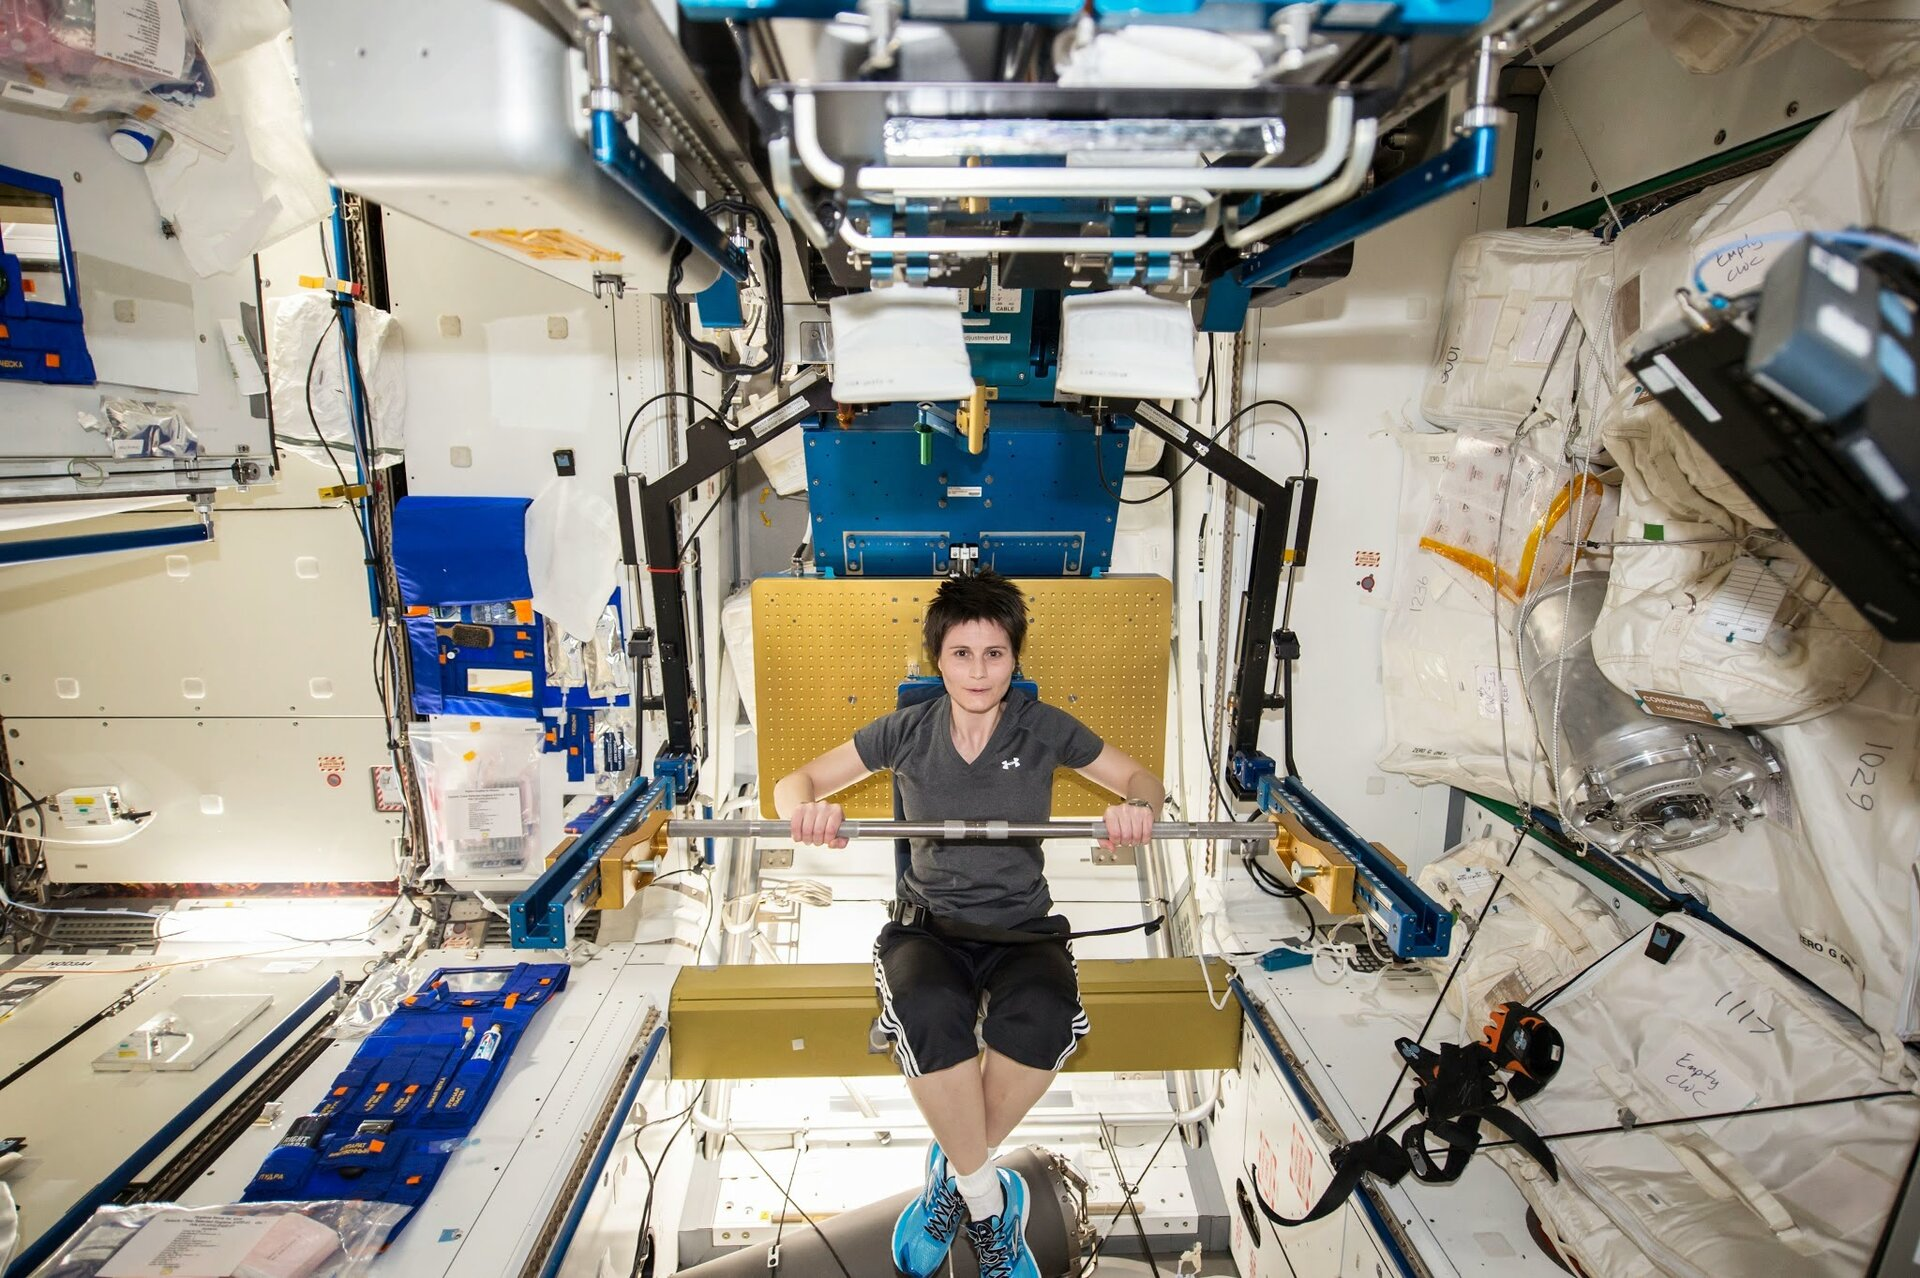 Samantha Cristoforetti exercises to fight bone loss in space